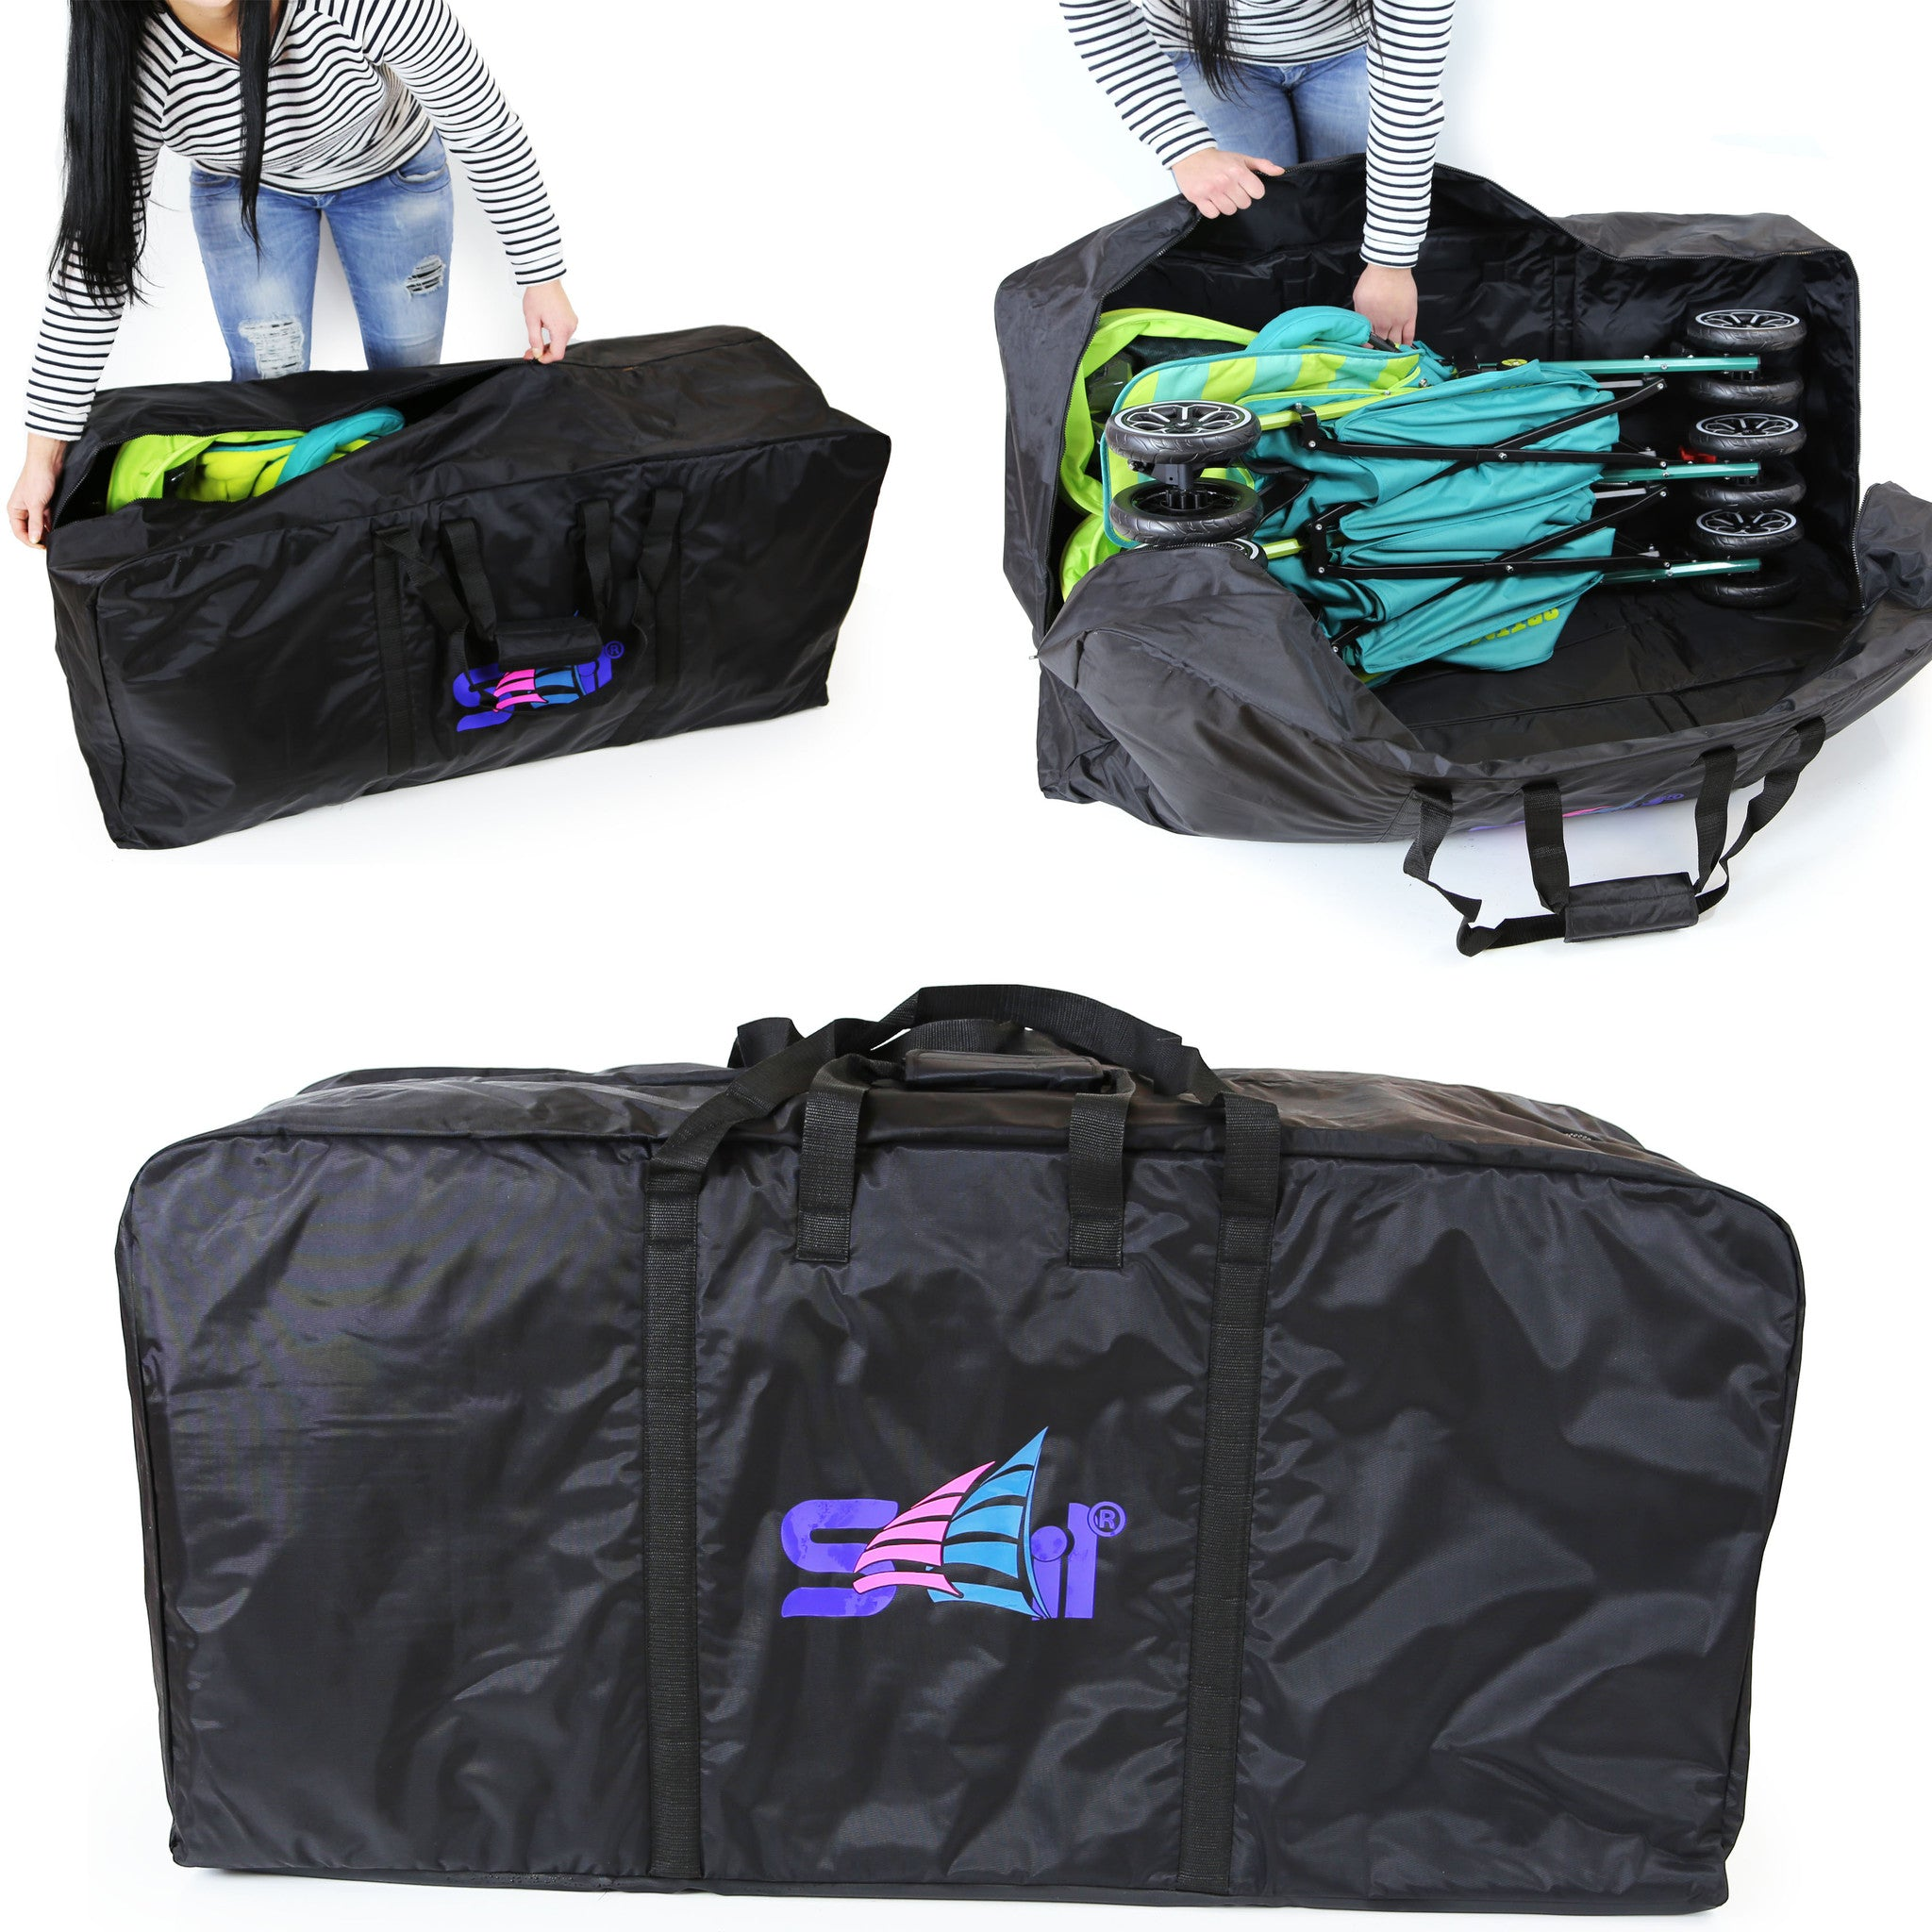 Isafe Travel Bags